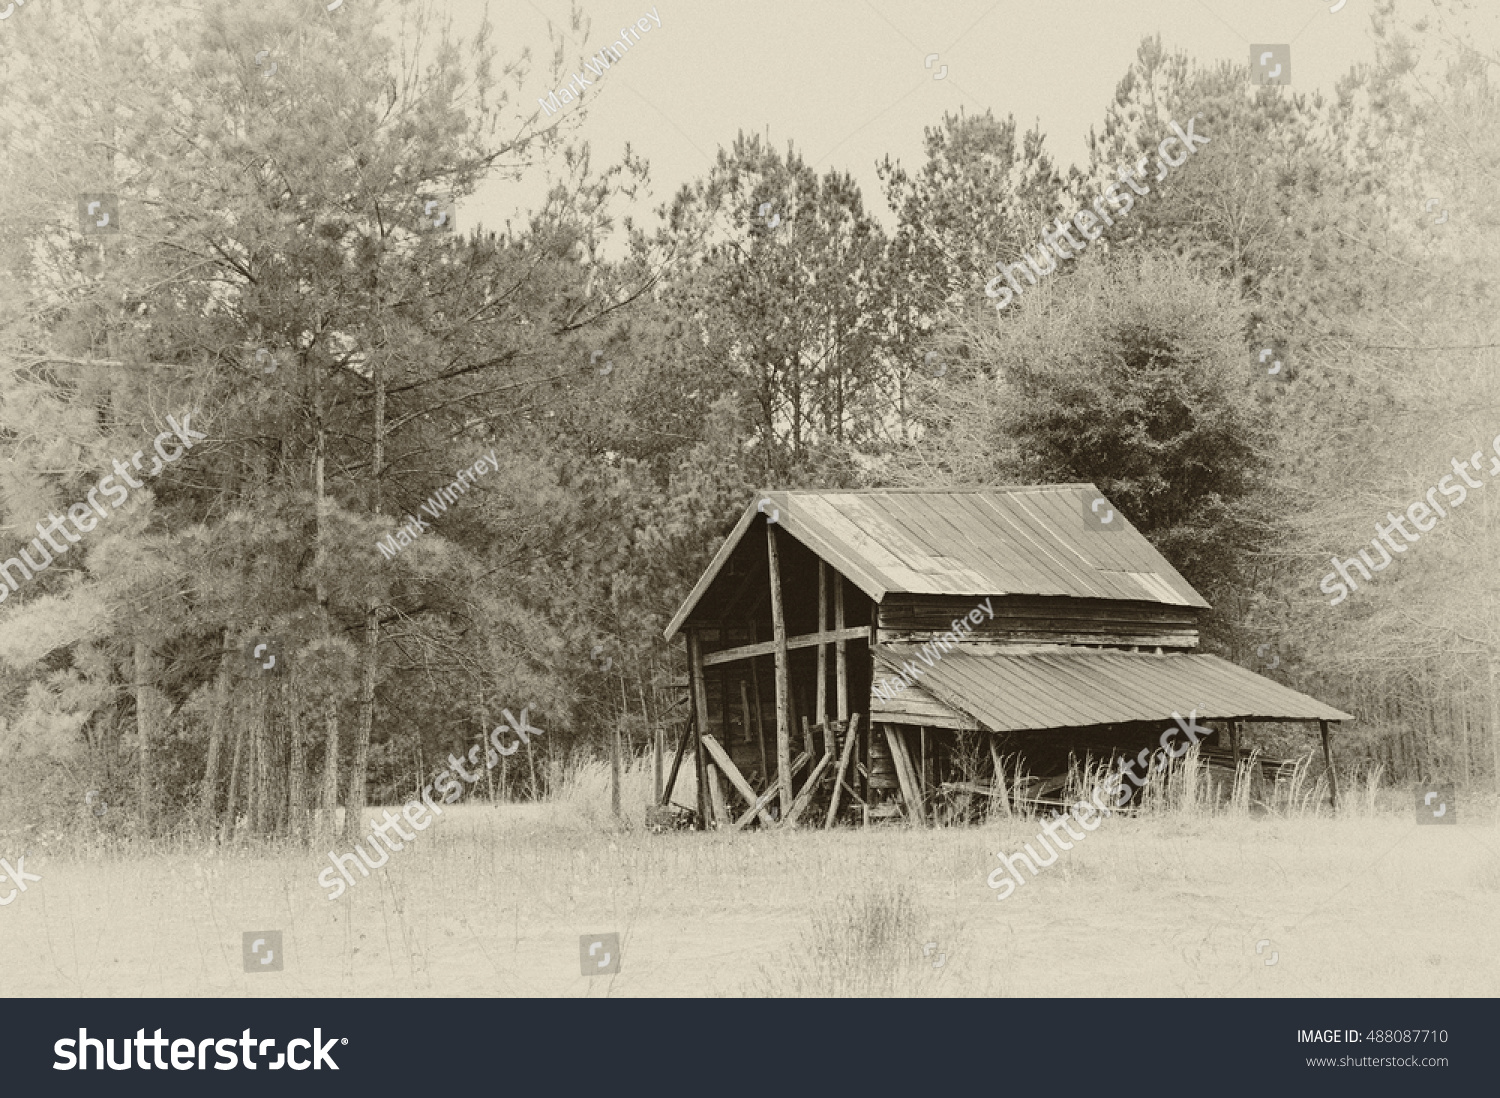 stock-photo-an-old-abandoned-barn-in-bla